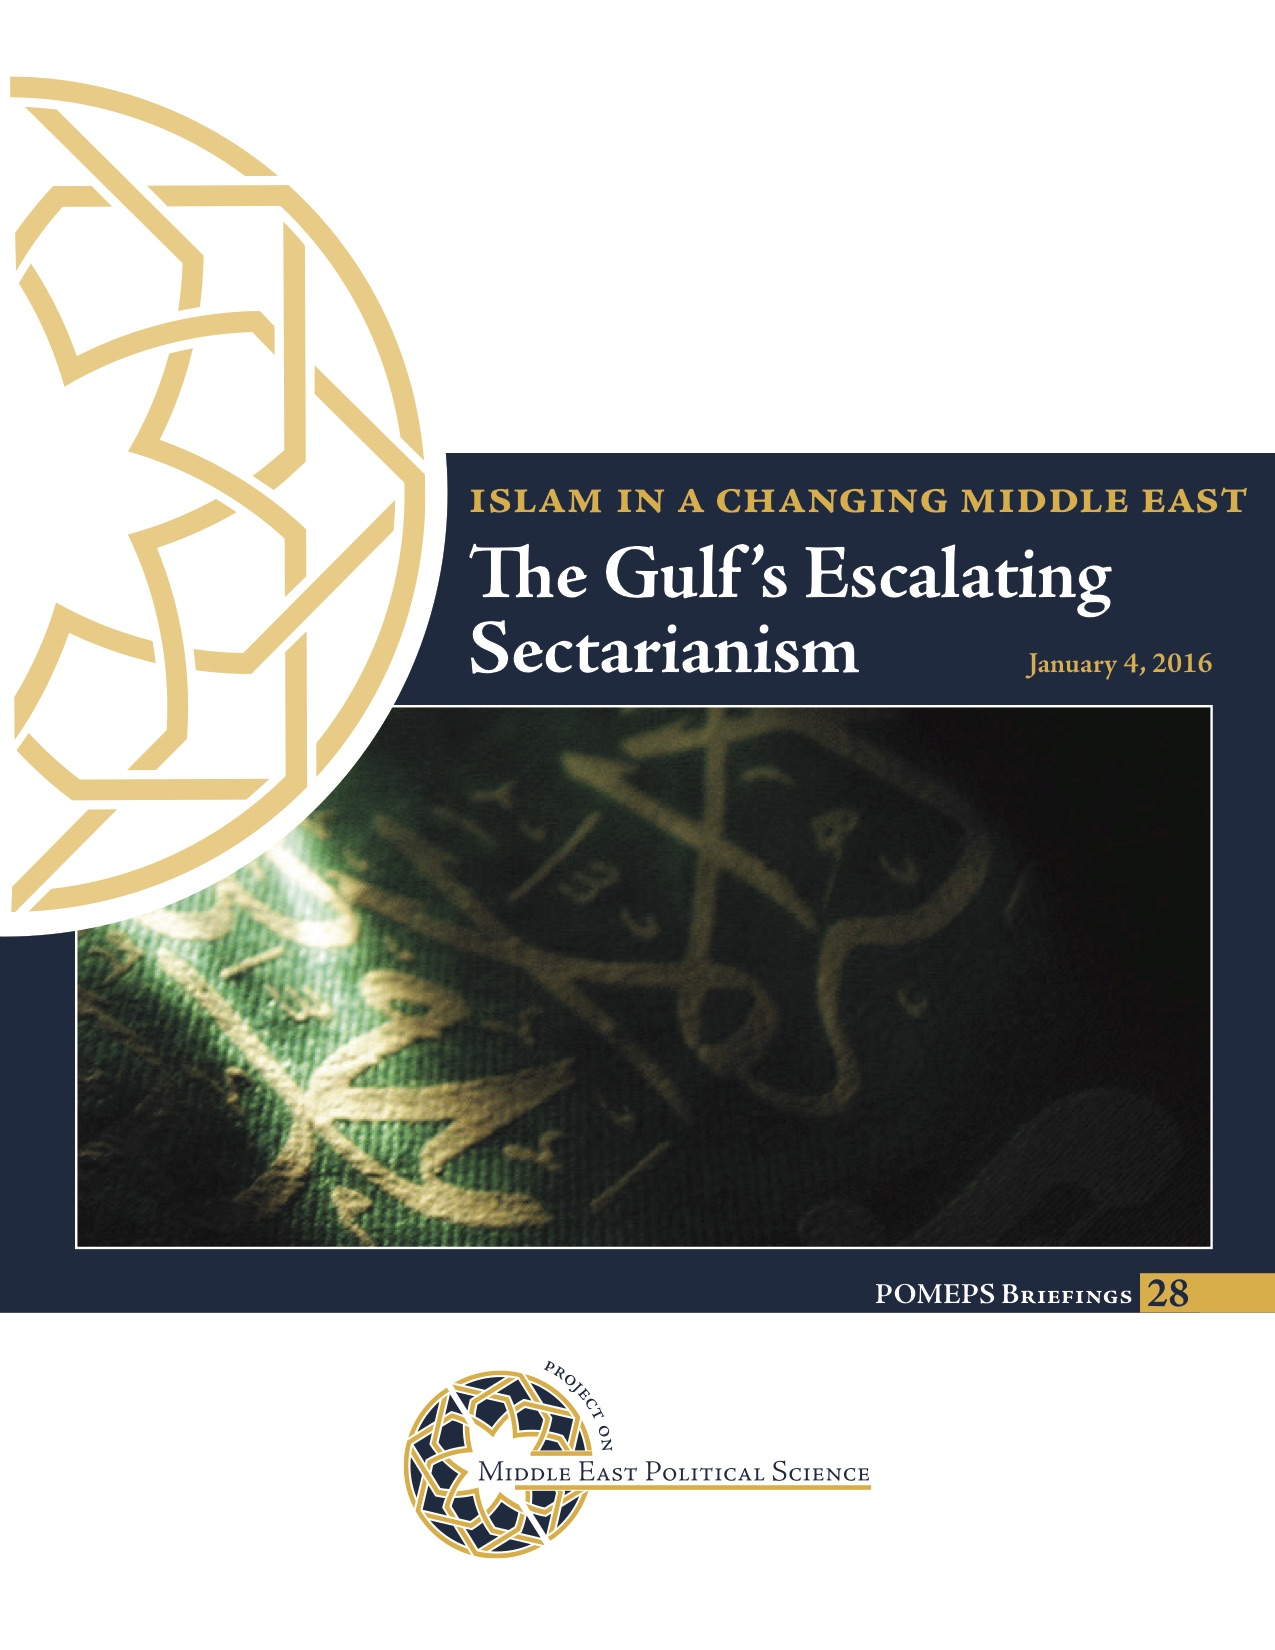 The Gulf's Escalating Sectarianism